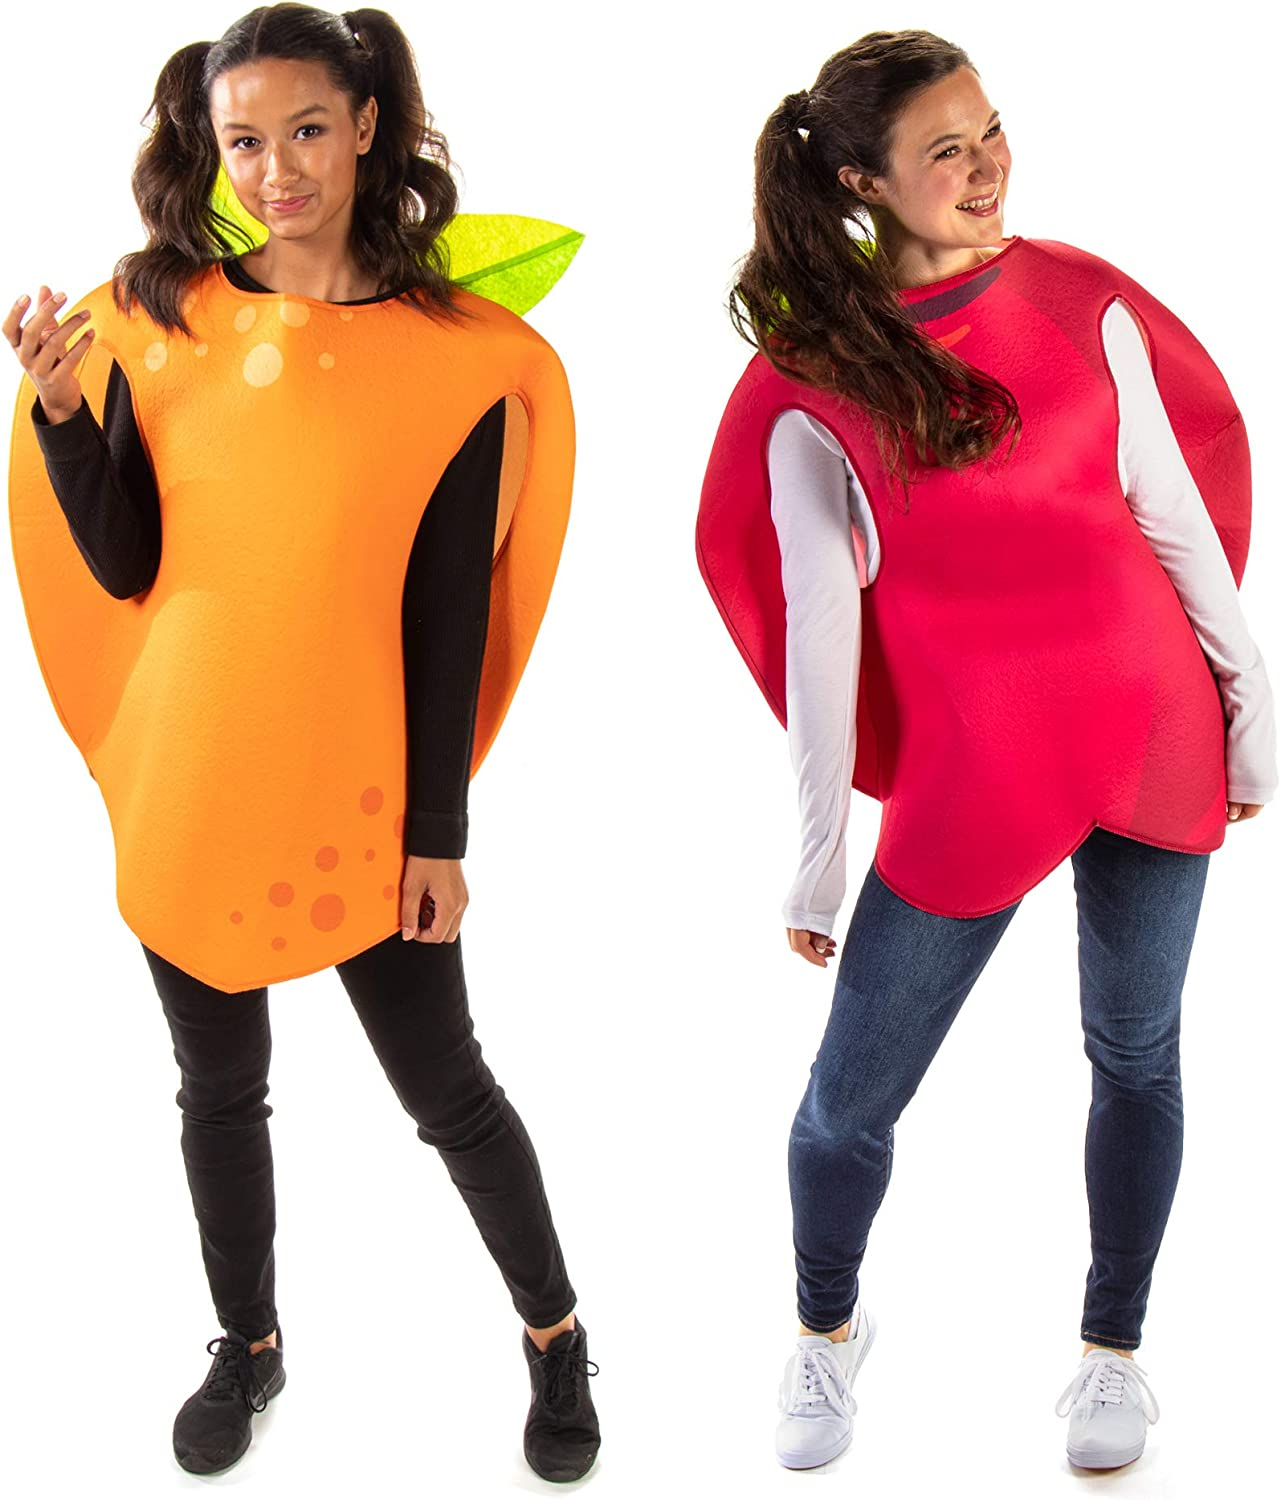 Apple & Orange Halloween Couples Costume - Adult Unisex Funny Fruit Food Outfits